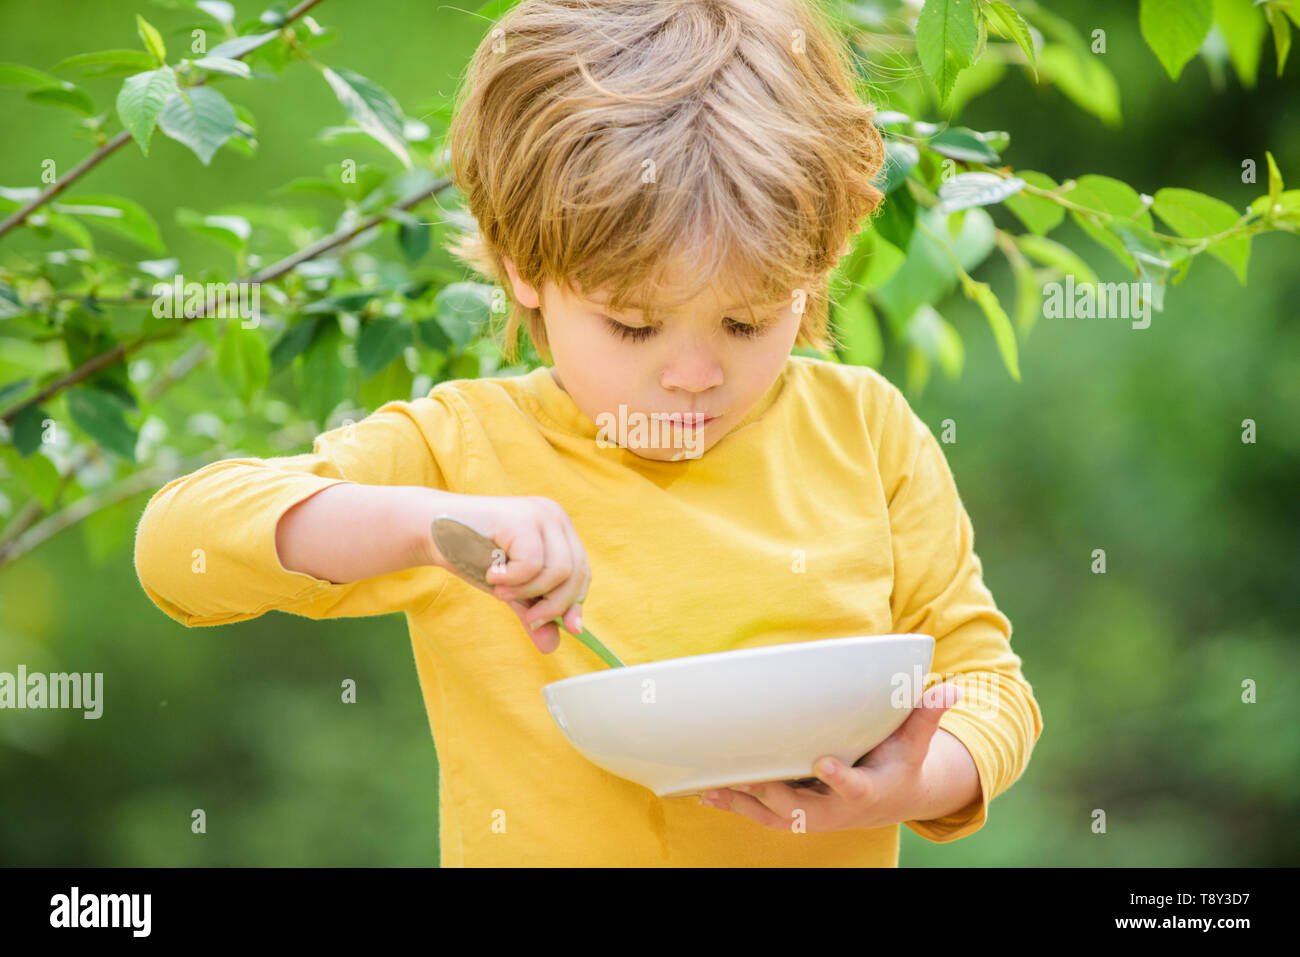 Son And Eating Milk Porridge Cereal For Breakfast Good Morning Small Boy Eating Outdoor Child Development Little Boy Eat Healthy Food Childhood Happiness Healthy Food And Dieting Family Day Stock Photo